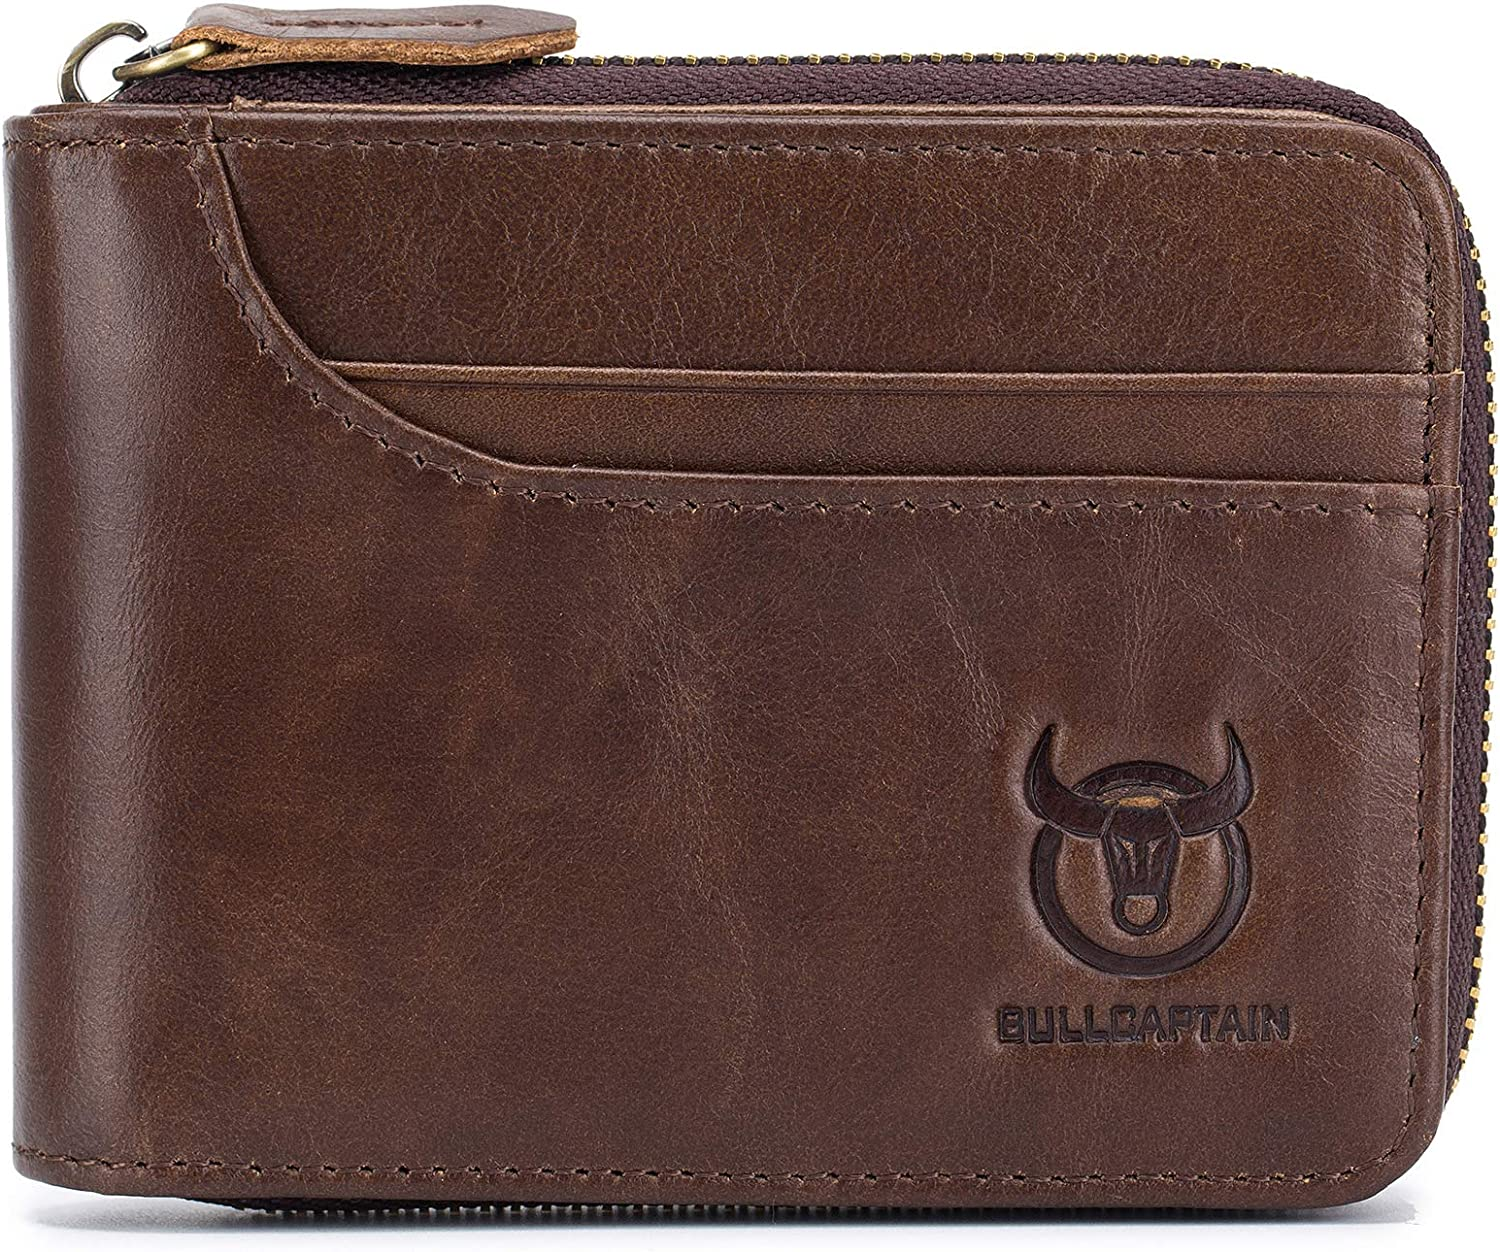 Brown Bull Captain Mens Genuine Leather Wallet,RFID Blocking Short Zip Around Bifold Purse Vintage Multi Secure Card Holder with ID Window